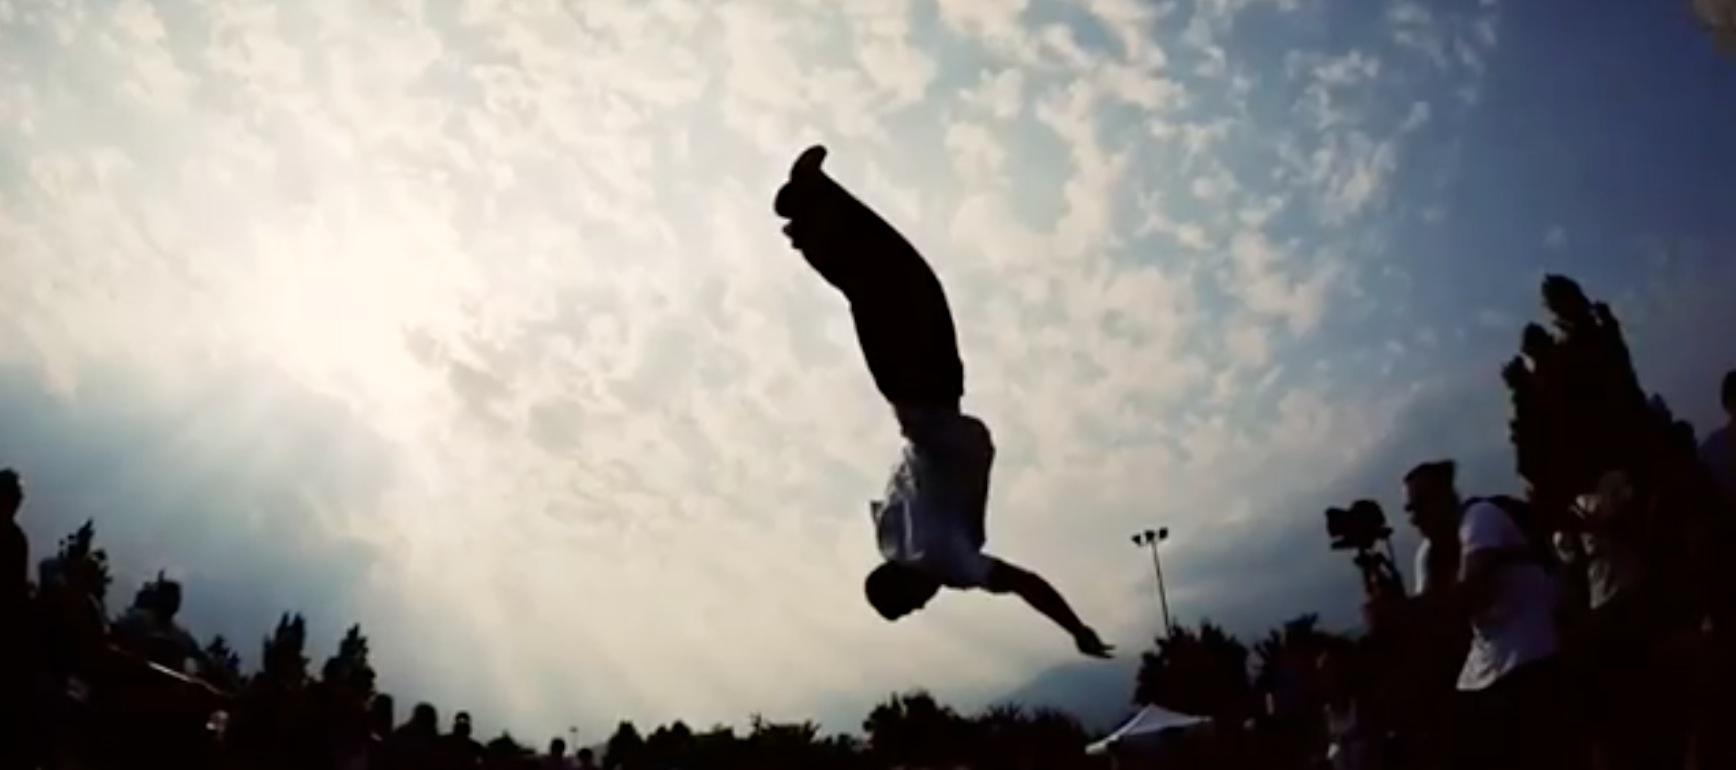 Related Pictures running parkour wallpaper 1736x770